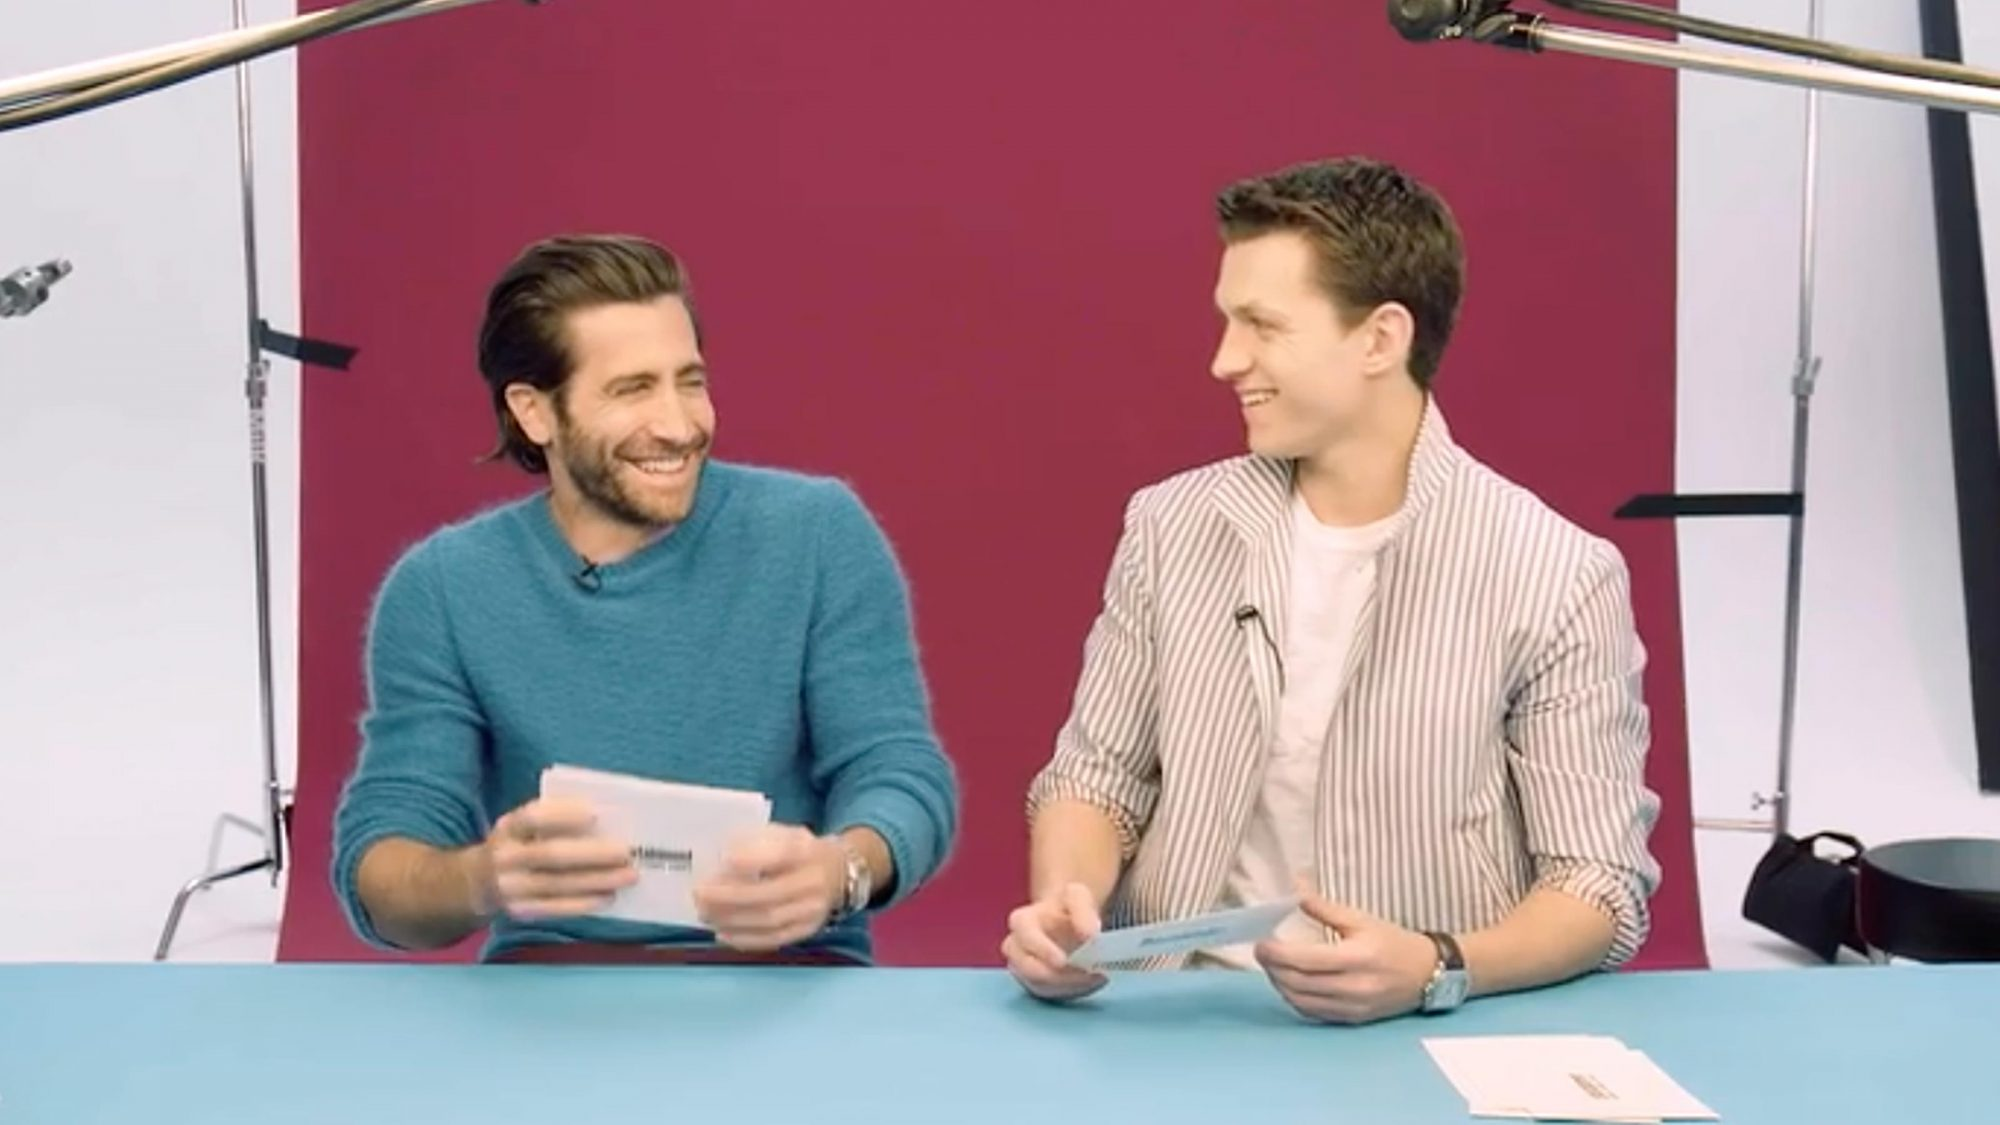 Jake Gyllenhaal and Tom Holland (screen grab)